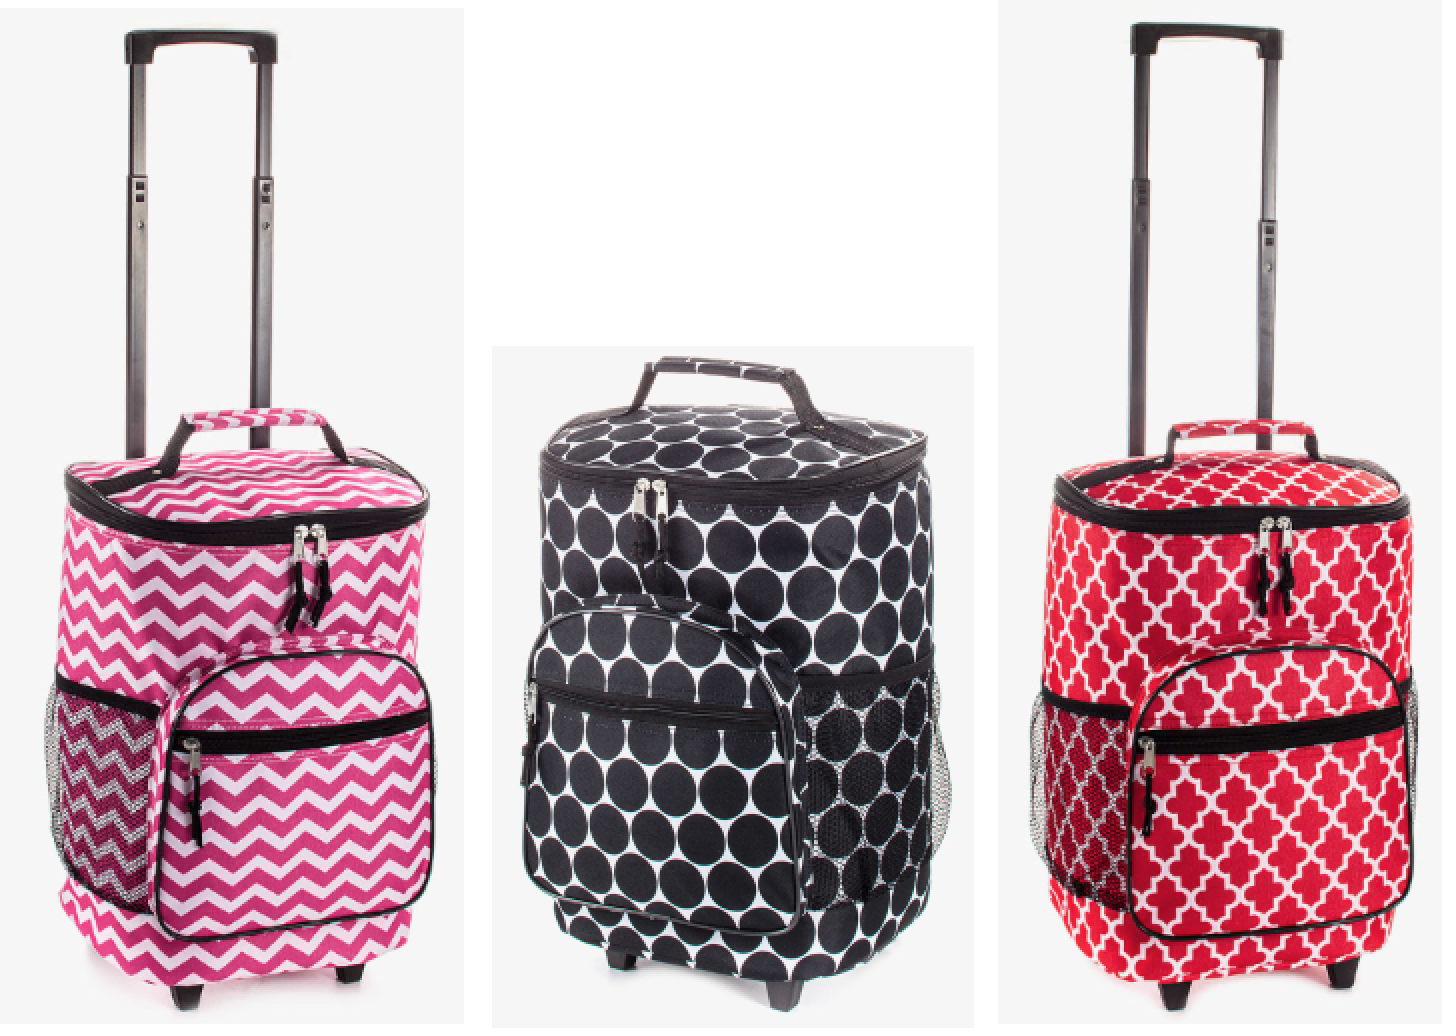 StageStores:  Insulated Rolling Bag Coolers = $25.94 Shipped!  Regularly $46.95 Shipped!